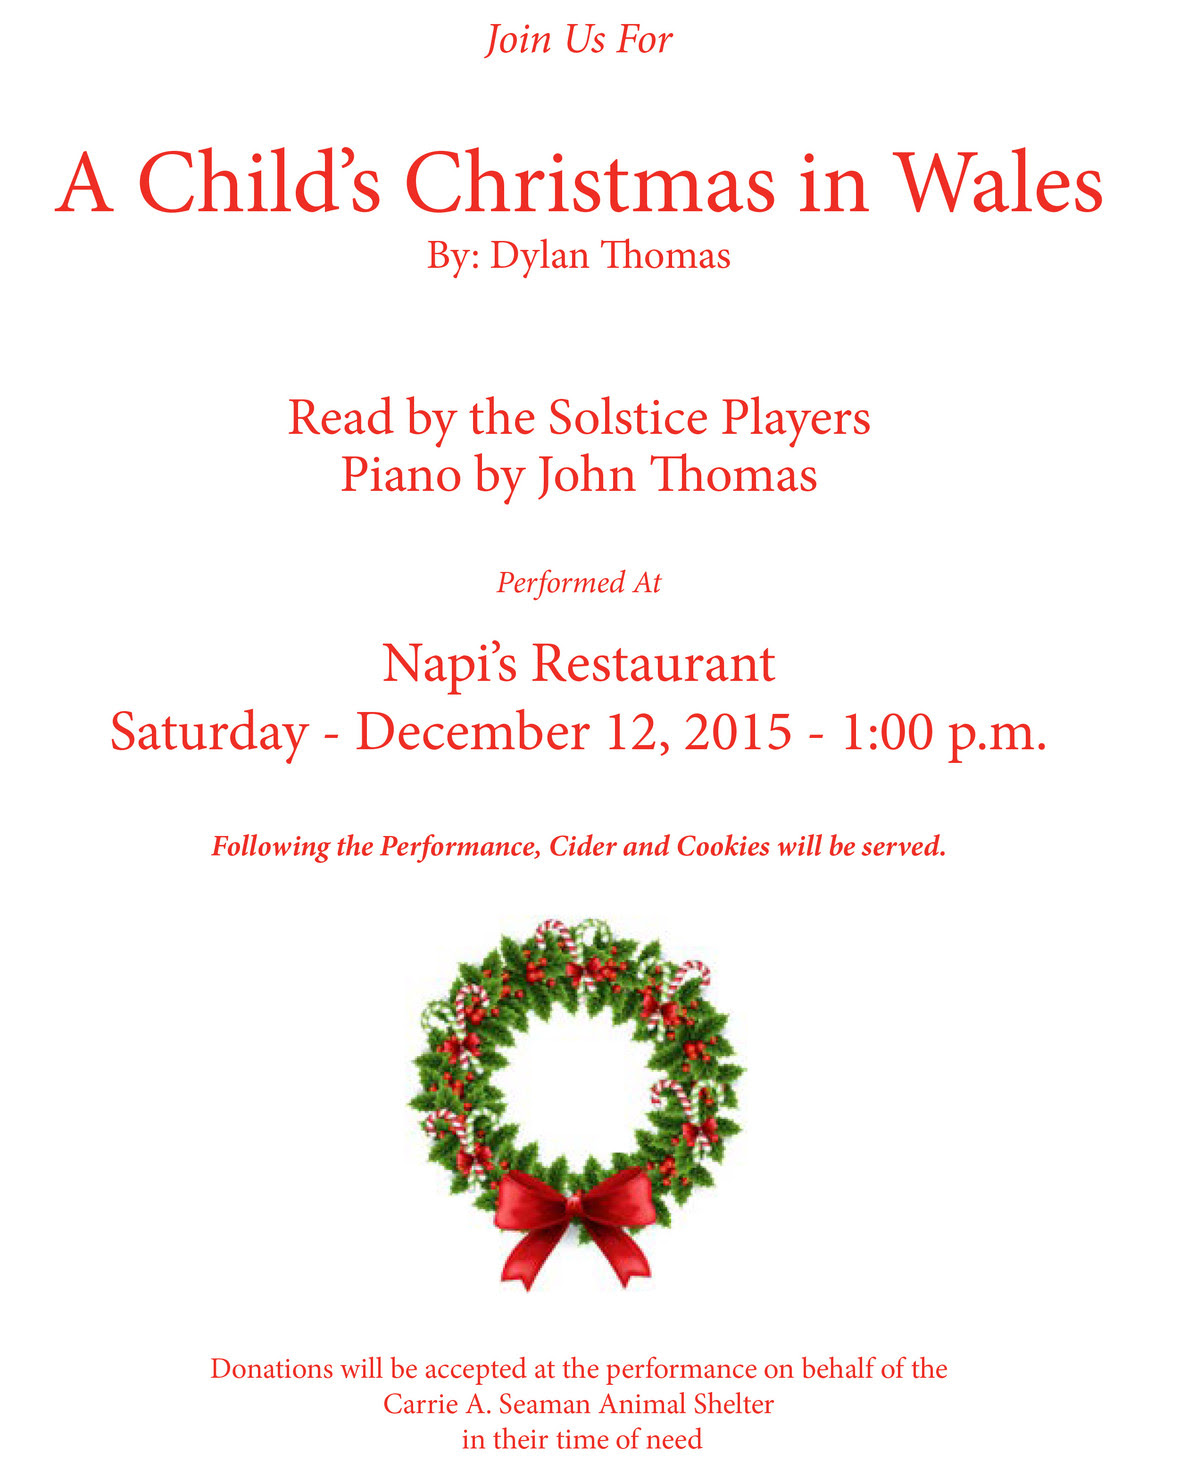 A Child s Christmas In Wales 12.12.15